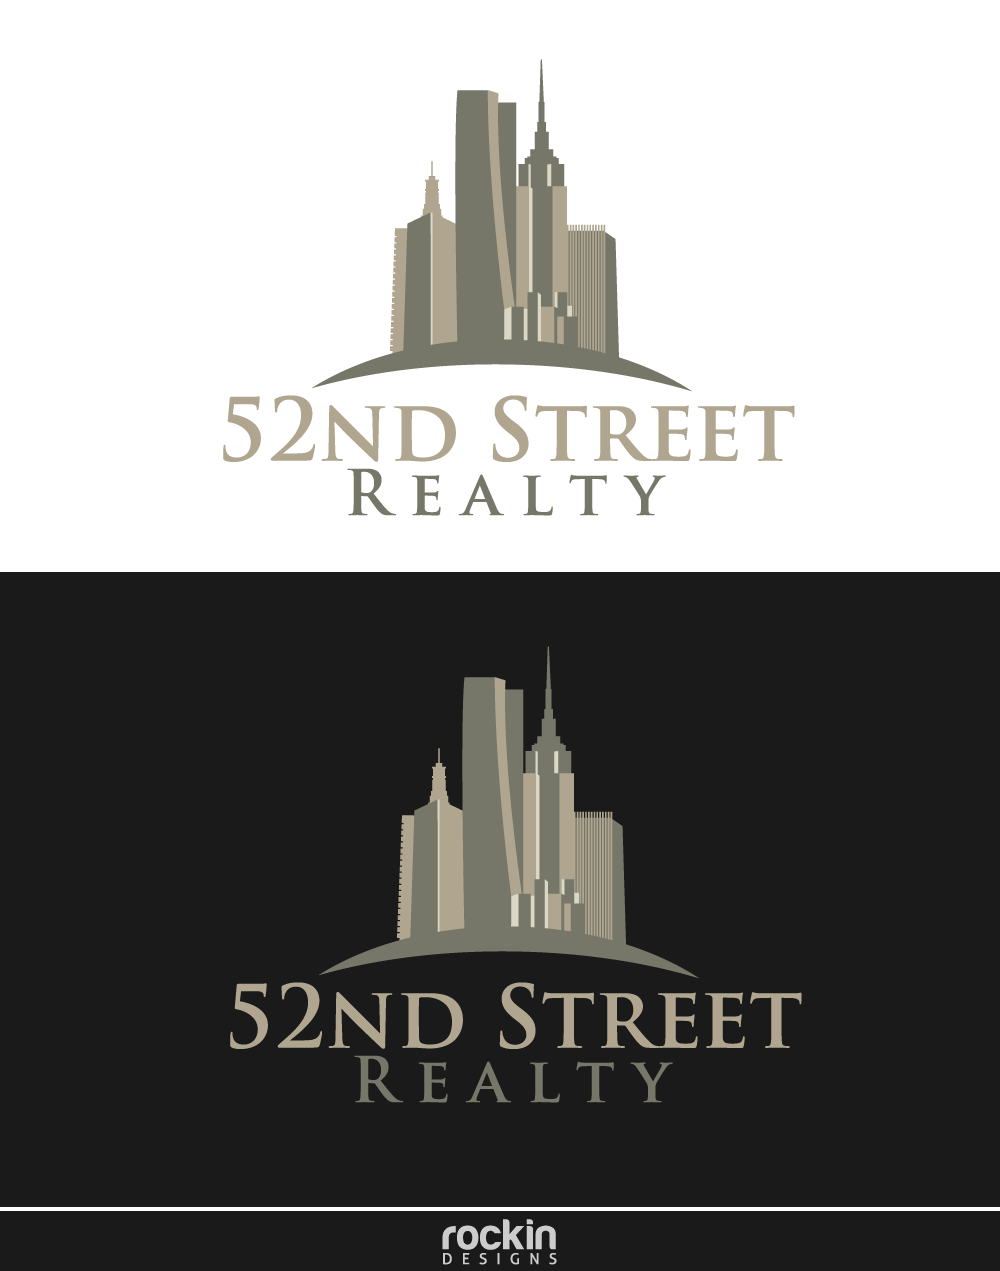 Logo Design by rockin - Entry No. 29 in the Logo Design Contest 52nd Street Realty Logo Design.